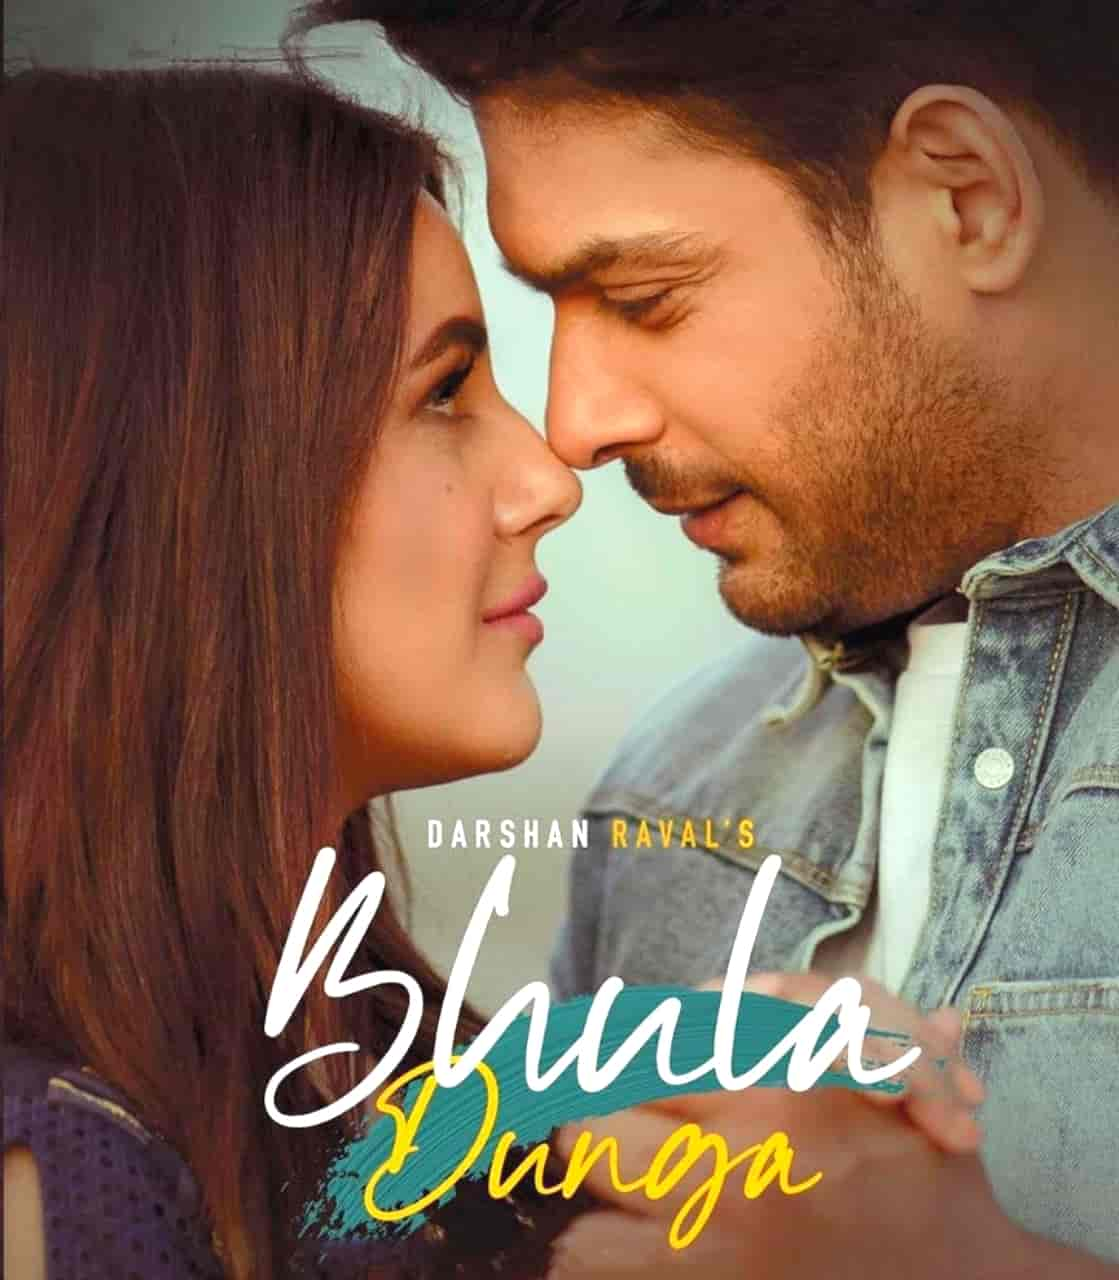 Bhula Dunga Song Image By Darshan Raval features Shehnaaz Gill and Sidharth Shukla